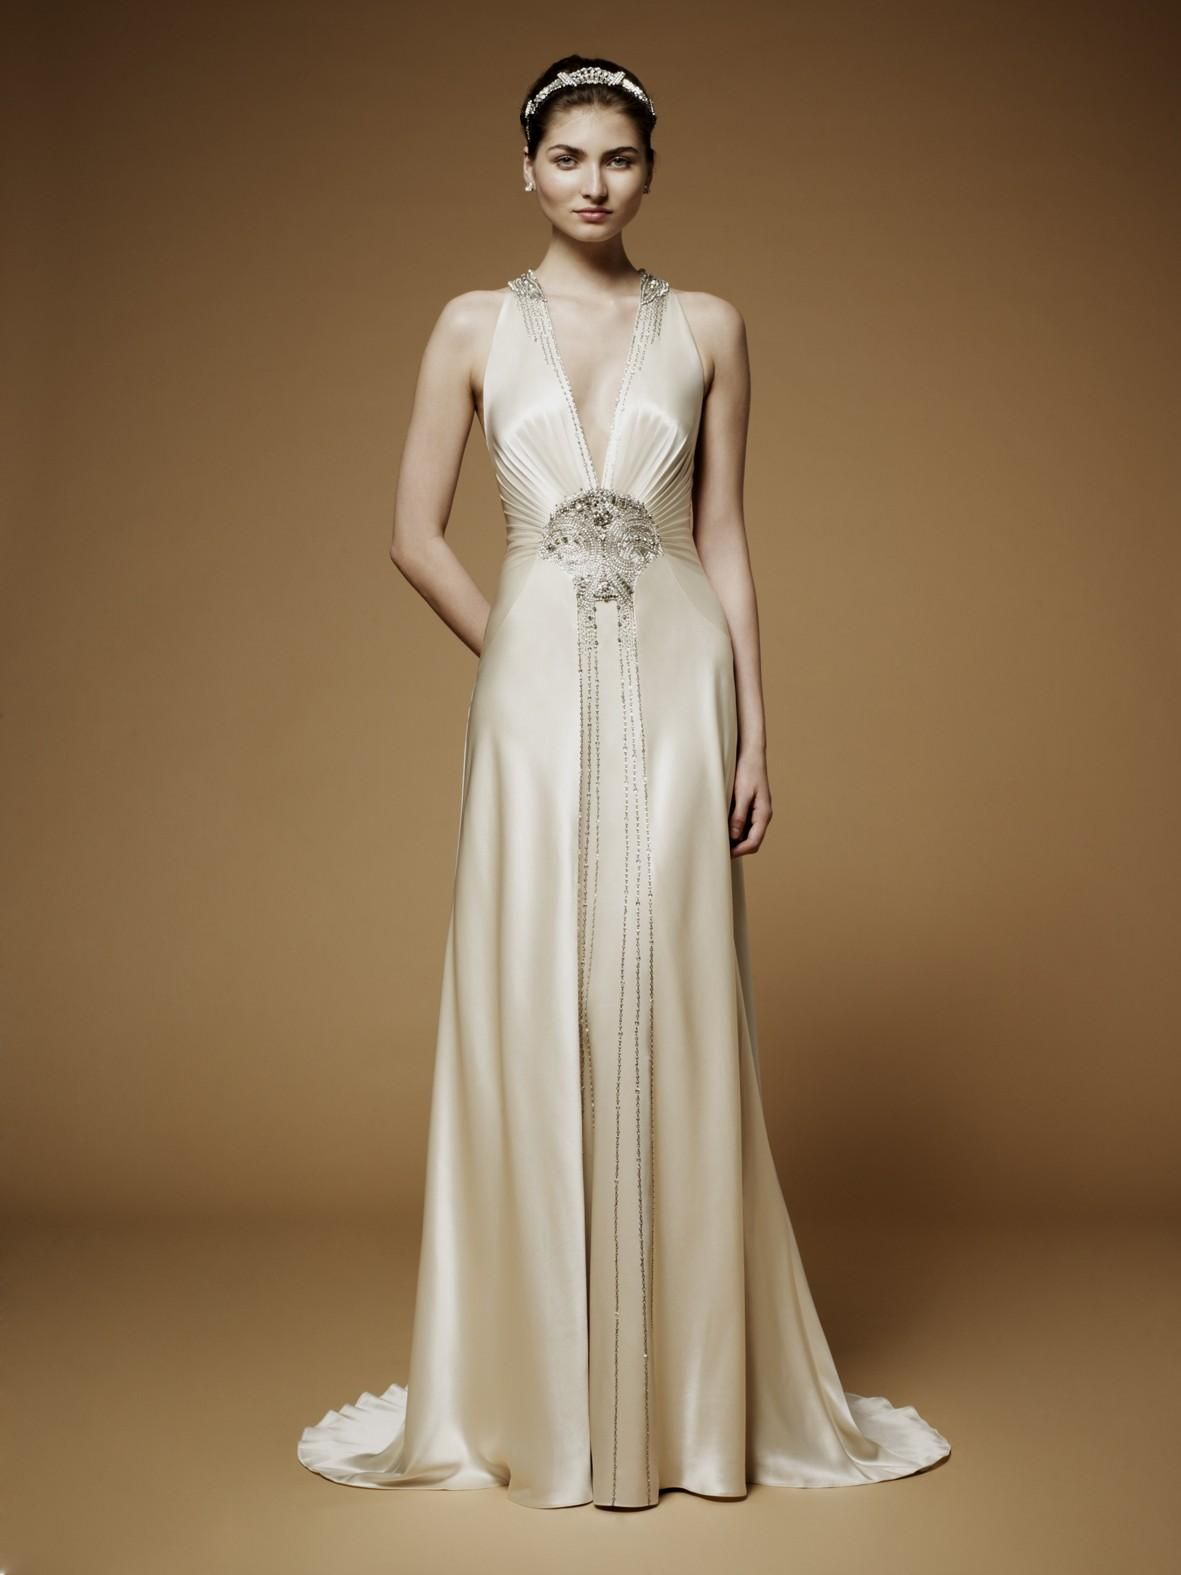 The great gatsby art deco wedding inspiration lokis wedding today what i have in box of treasure for you is original and elegant art deco bridesmaid dresses whats a cocktail party without ombrellifo Images